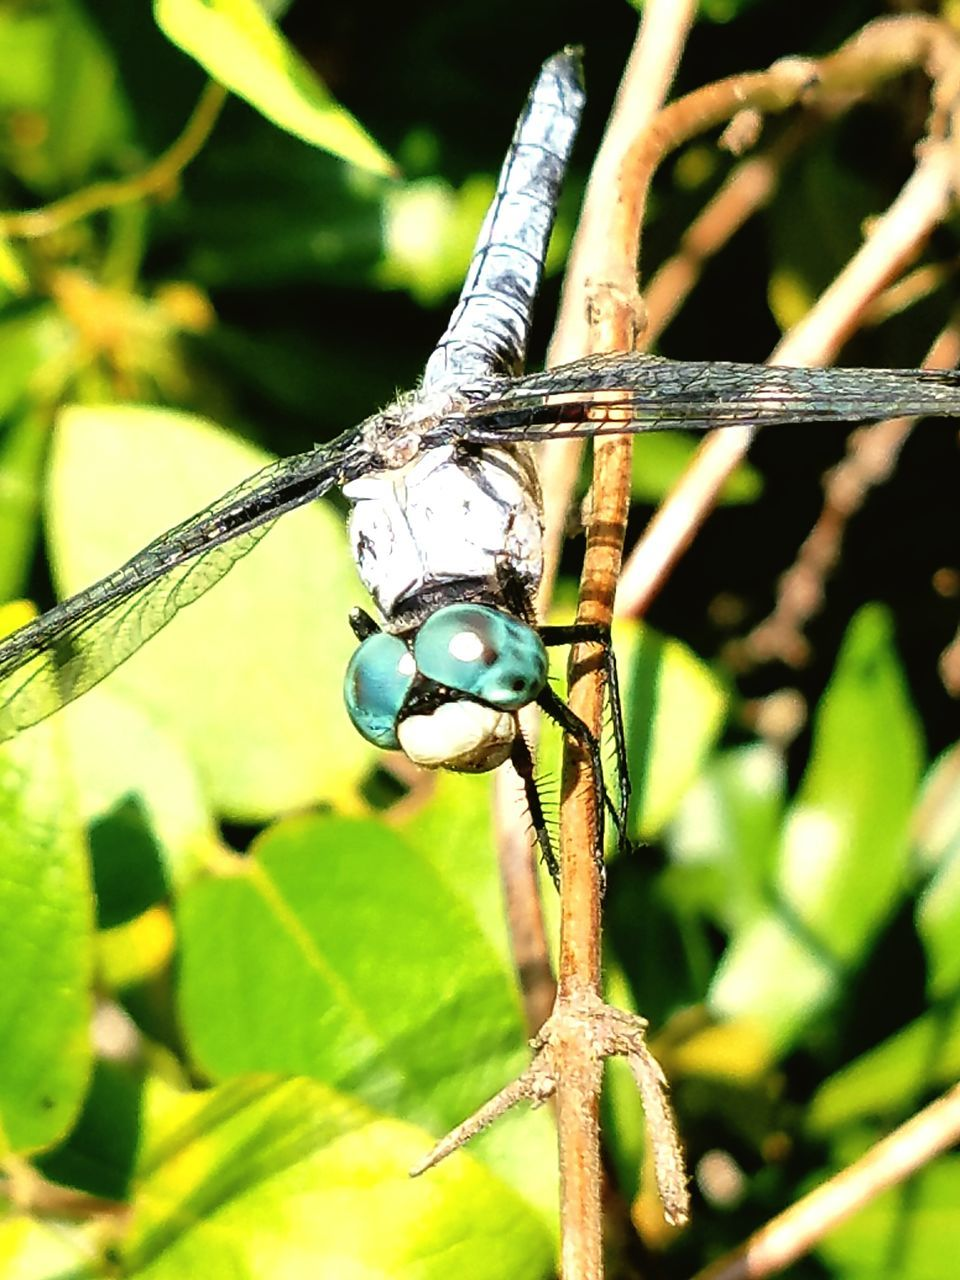 one animal, animal themes, insect, animals in the wild, close-up, animal wildlife, no people, green color, day, outdoors, nature, damselfly